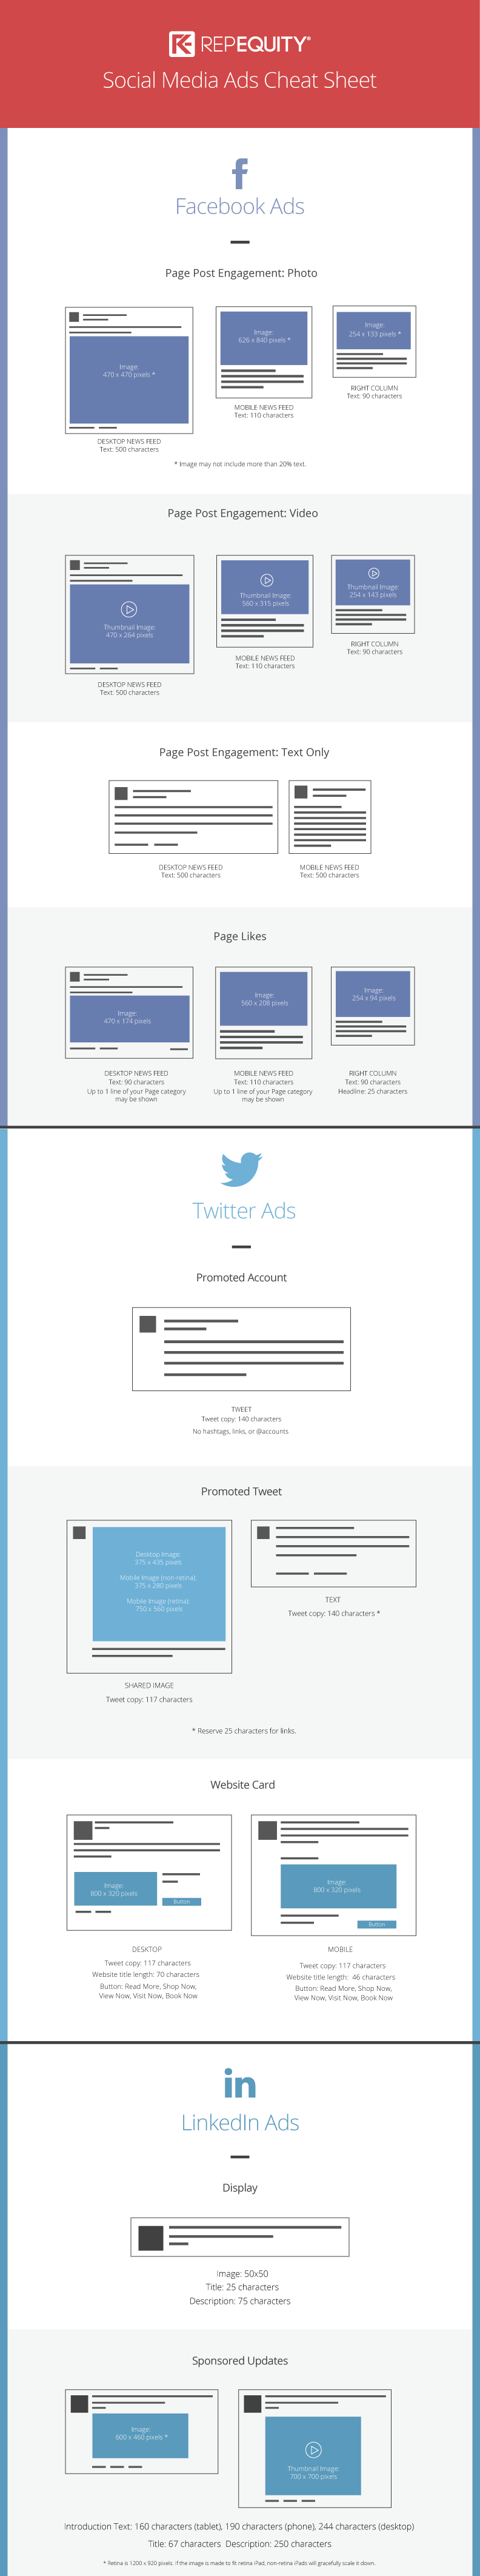 RepEquity Social Media Ads Guide Cheat Sheet